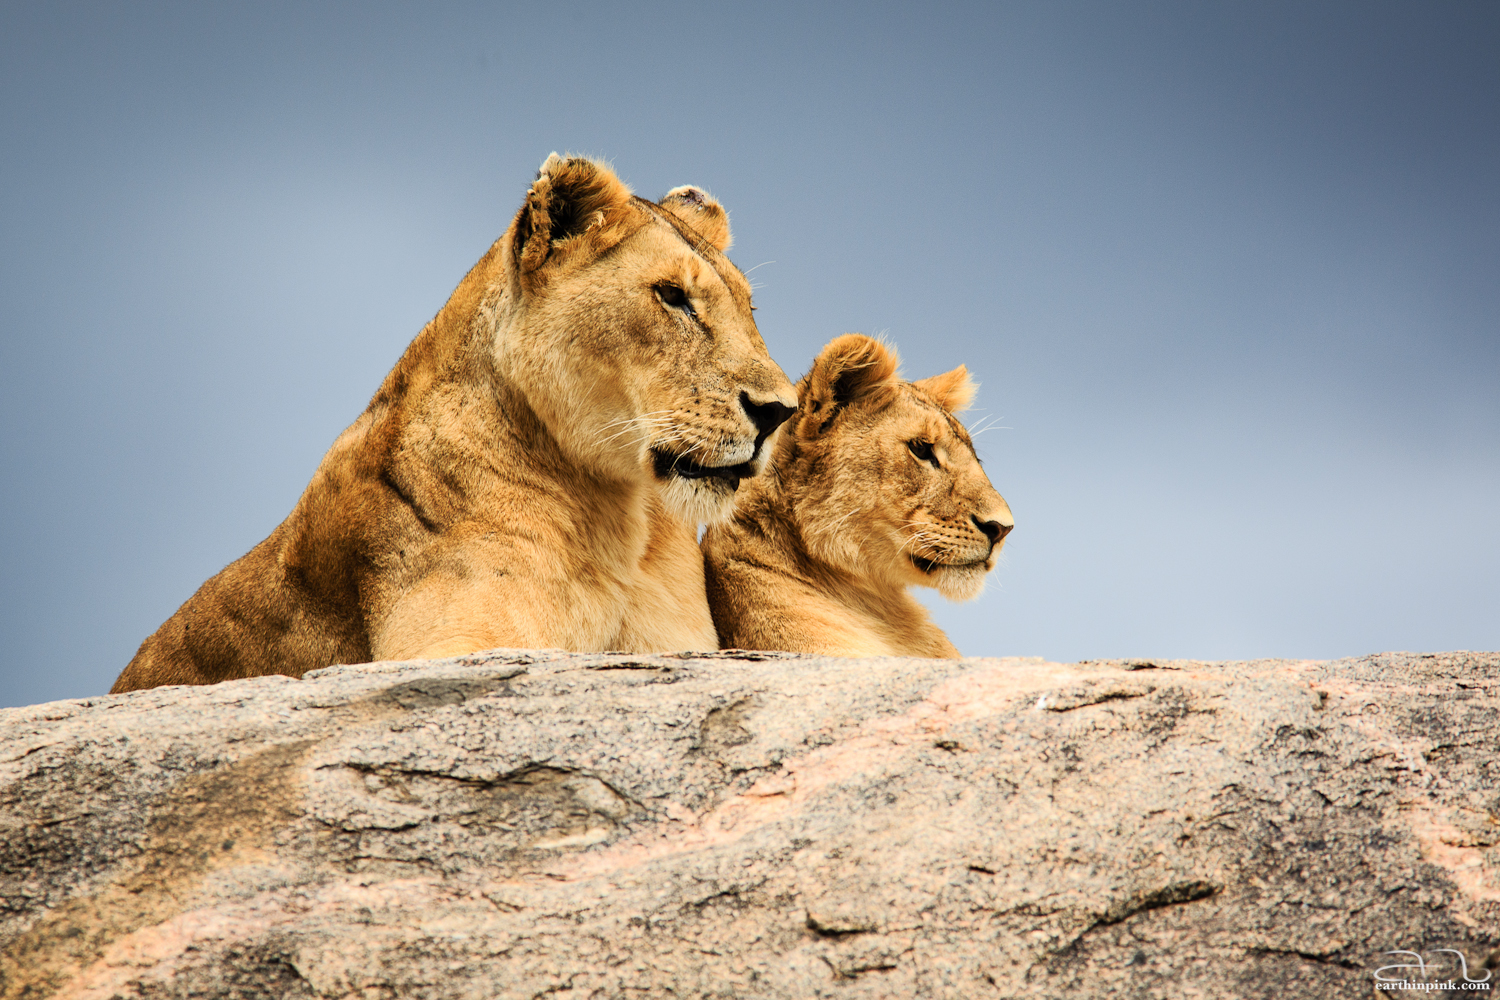 Ok, this is not a reflection - which makes the perfectly mirrored position of these two lions on top of a rock in the Serengeti all the more spectacular.